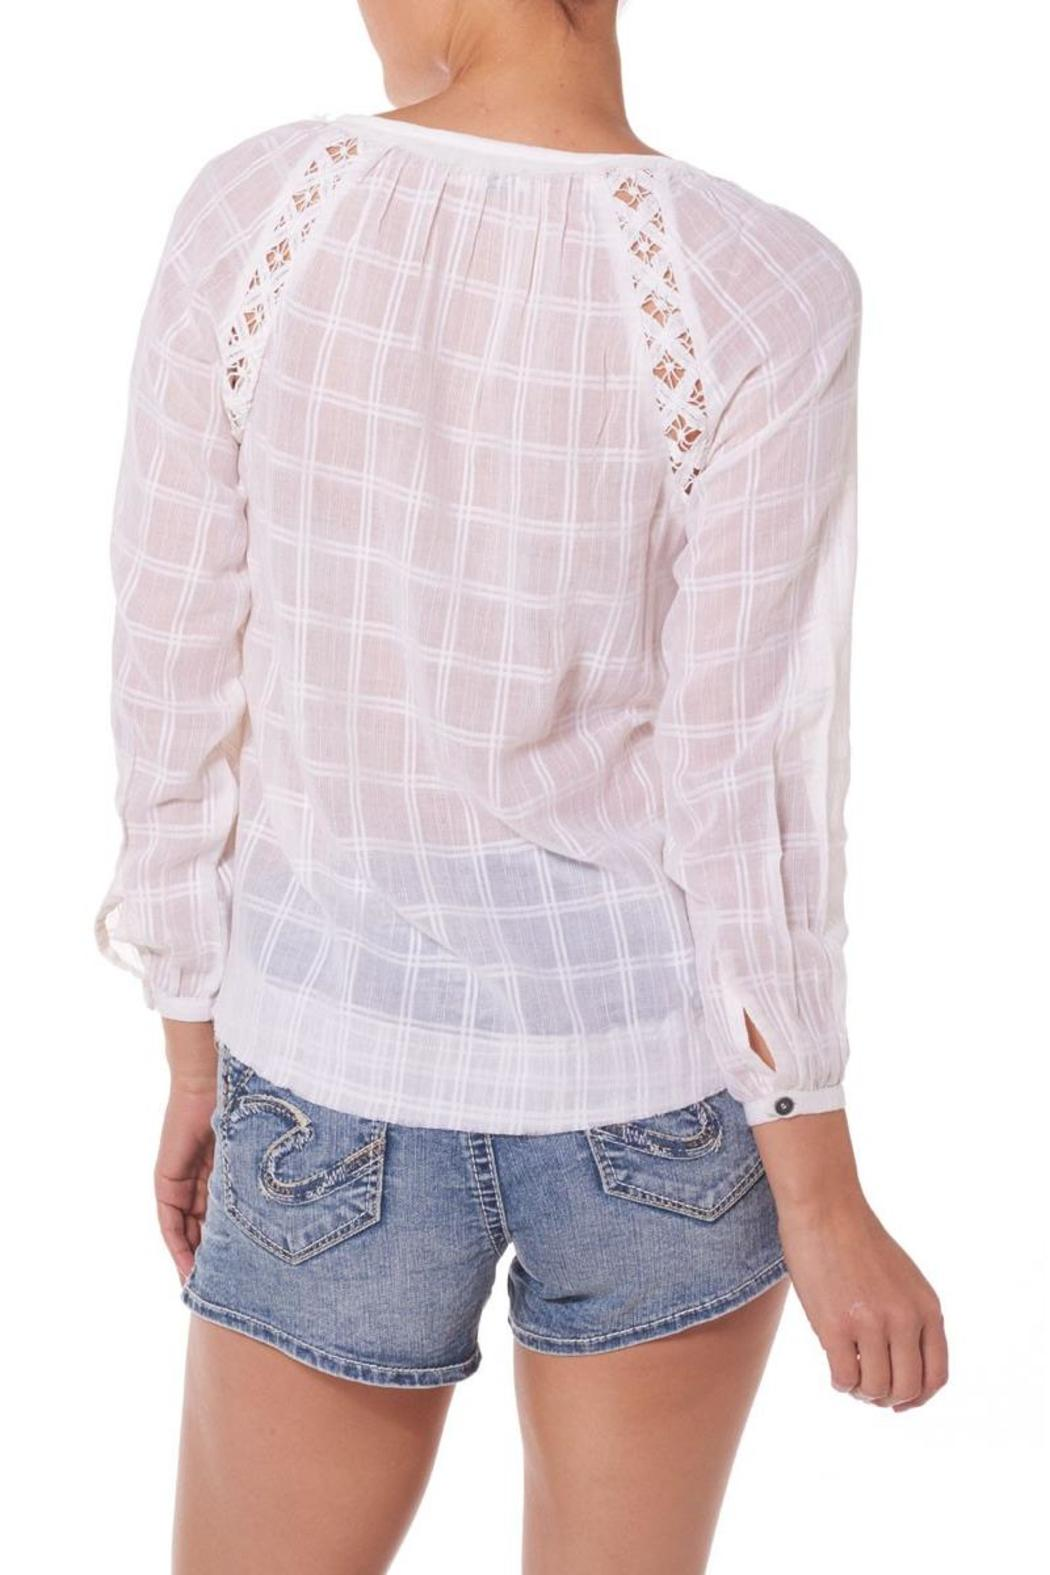 Silver Jeans Co. Embroidered Peasant Blouse - Front Full Image